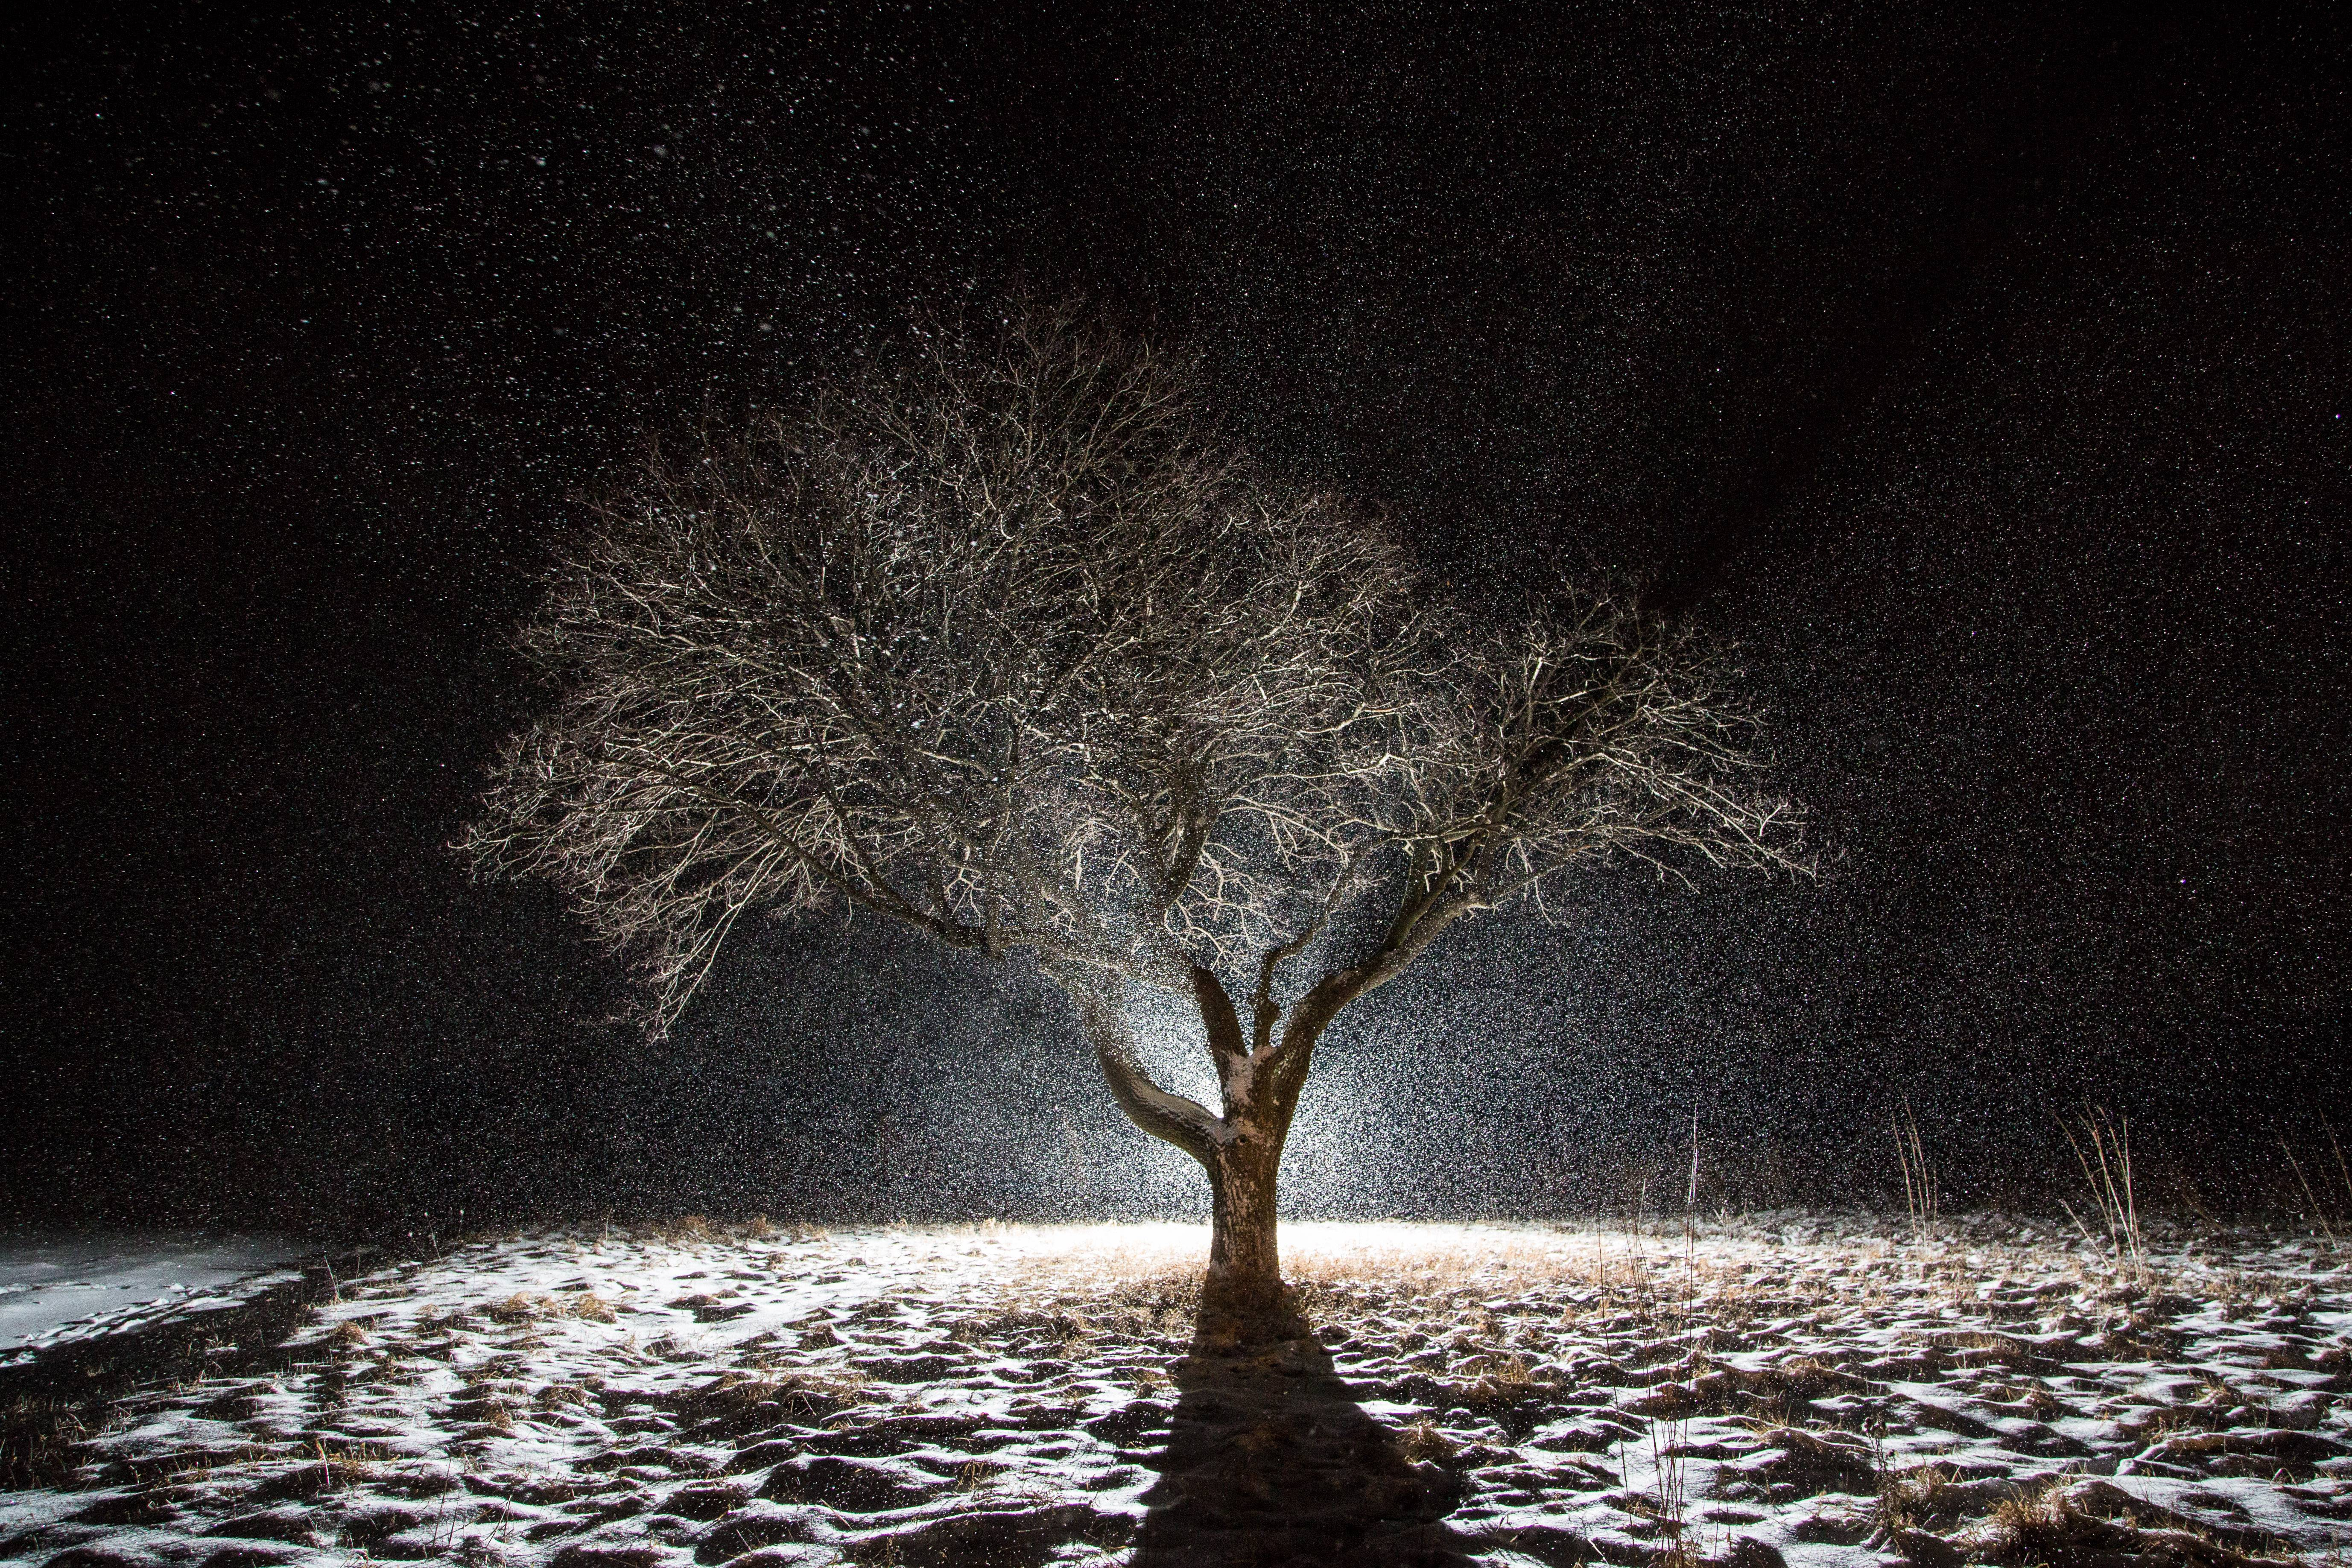 I took this picture of my favorite tree during this year's Valentine's Day snowstorm. I'd been thinking about taking this picture for weeks, just waiting for the right combination of weather and darkness. It all came together last Sunday night.